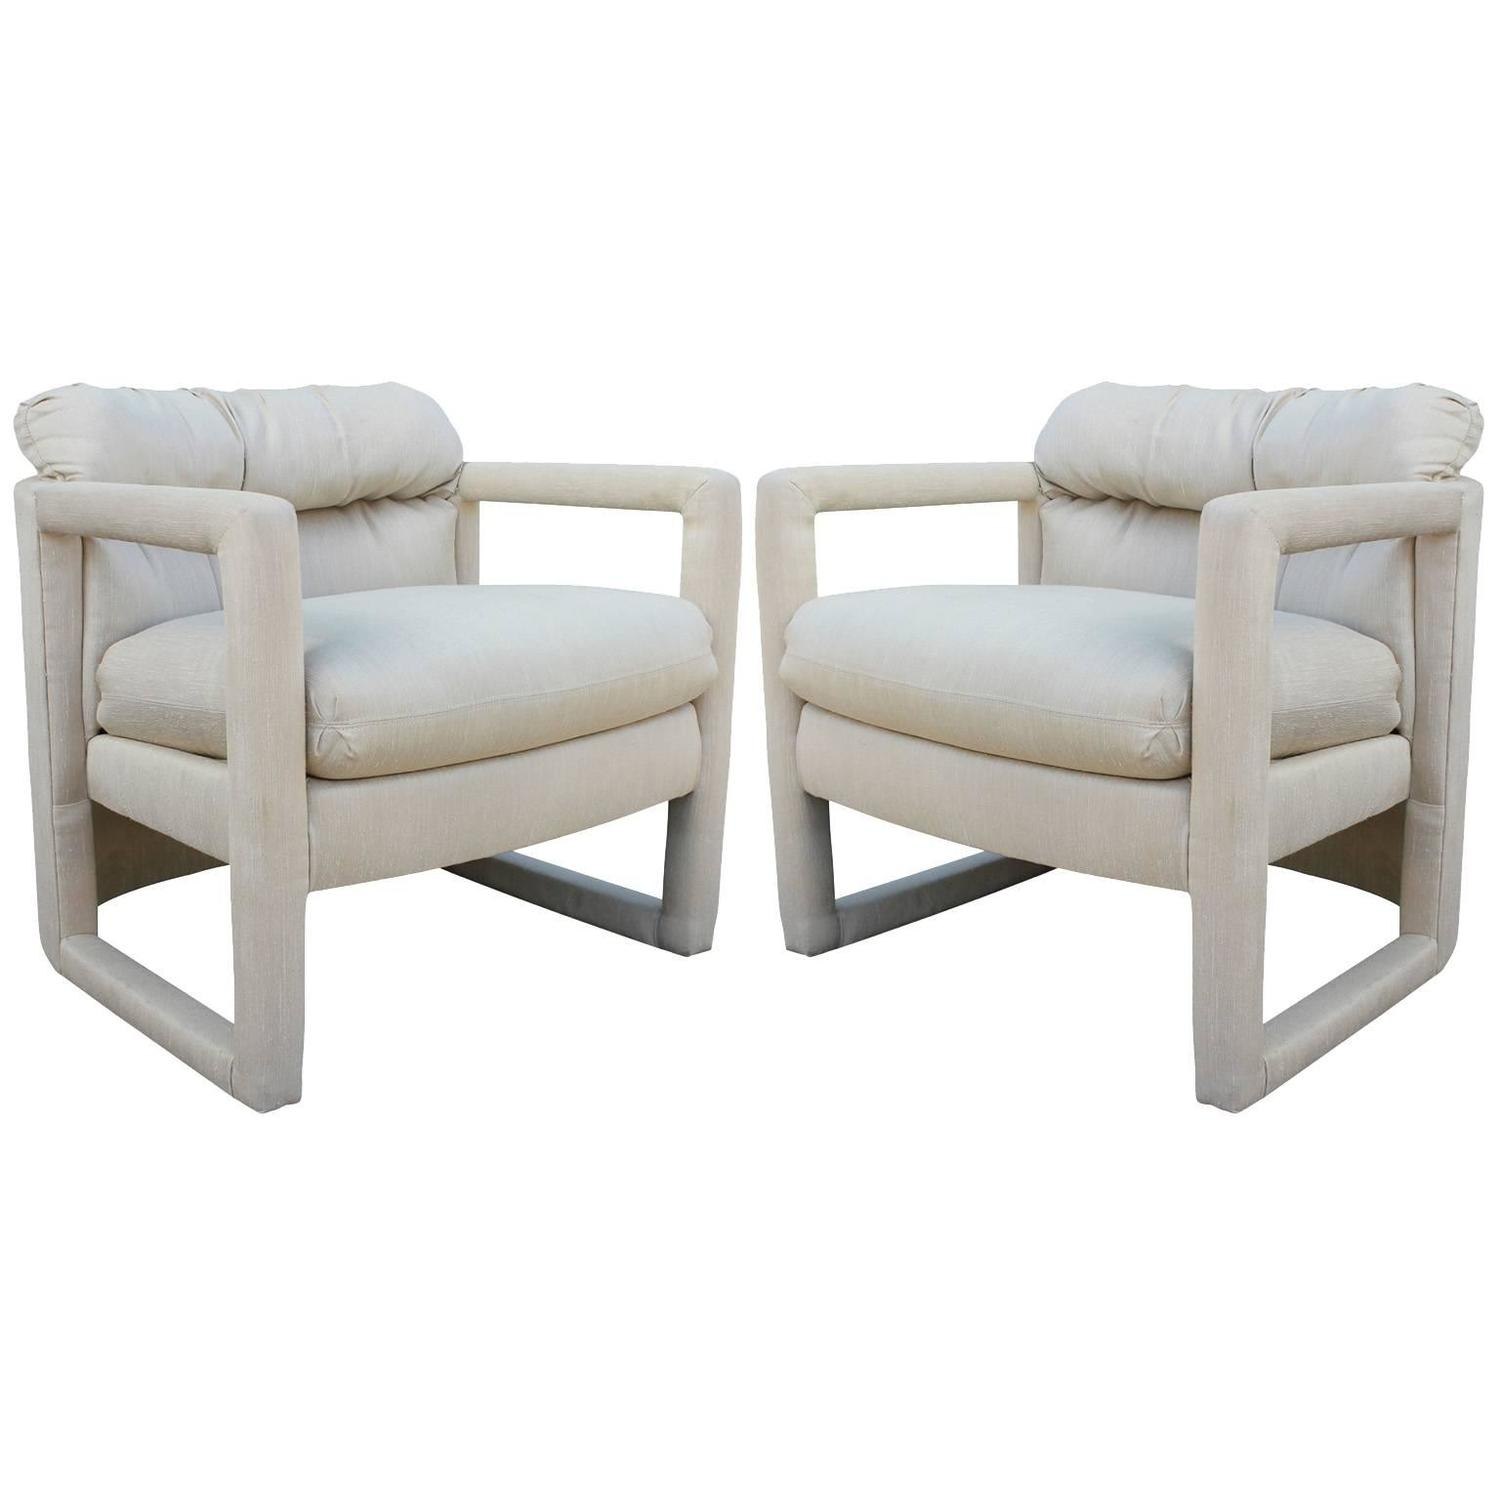 Drexel Seating 32 For Sale at 1stdibs